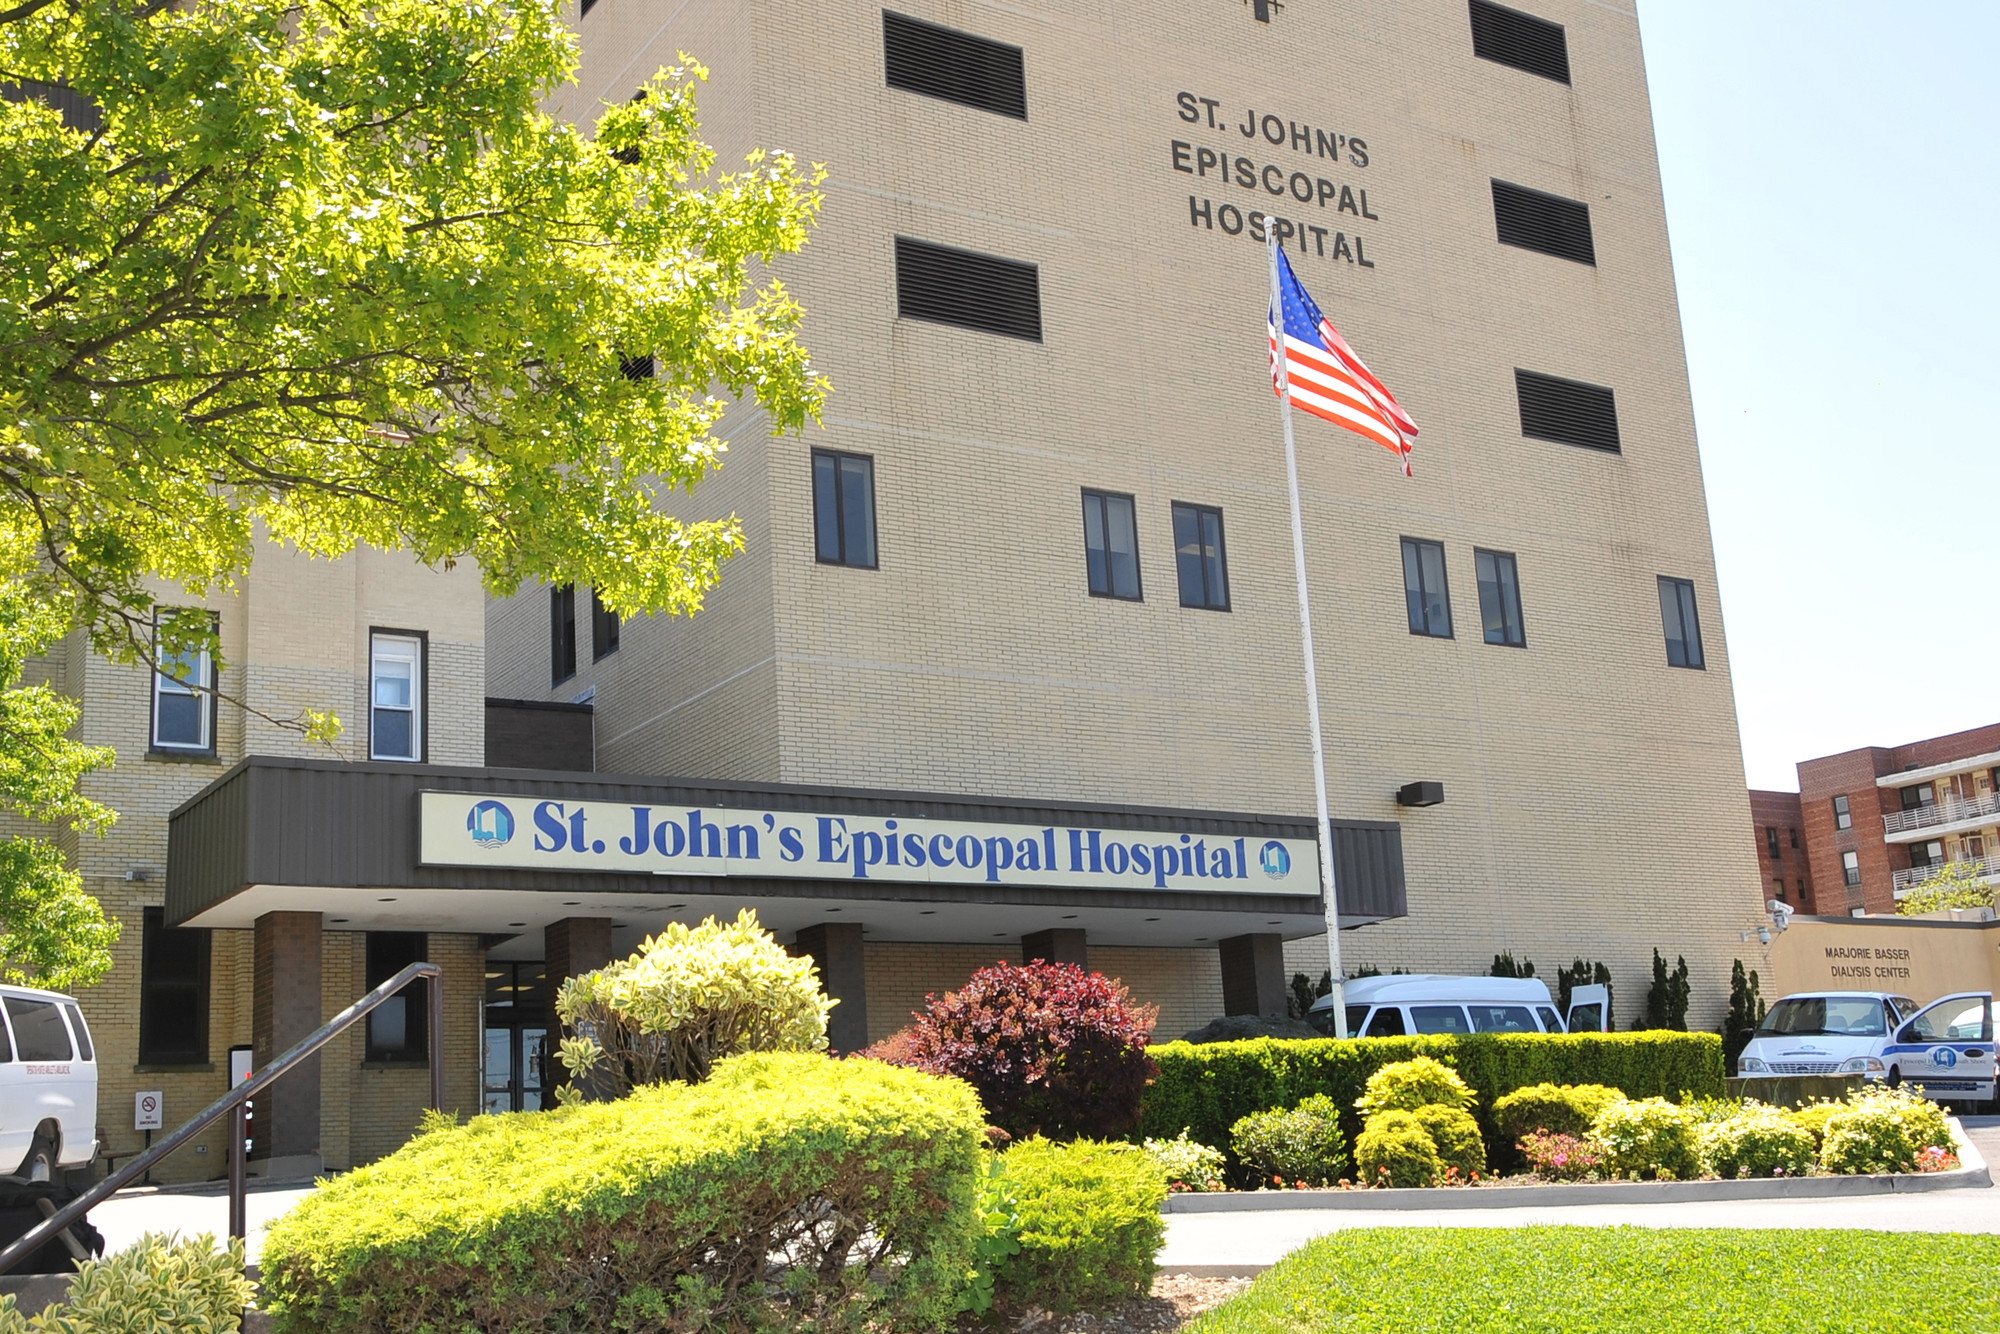 St. John's Episcopal Hospital in Far Rockaway and three others in proximity to the Five Towns ensure that staff can continue treating patients during a snowstorm.